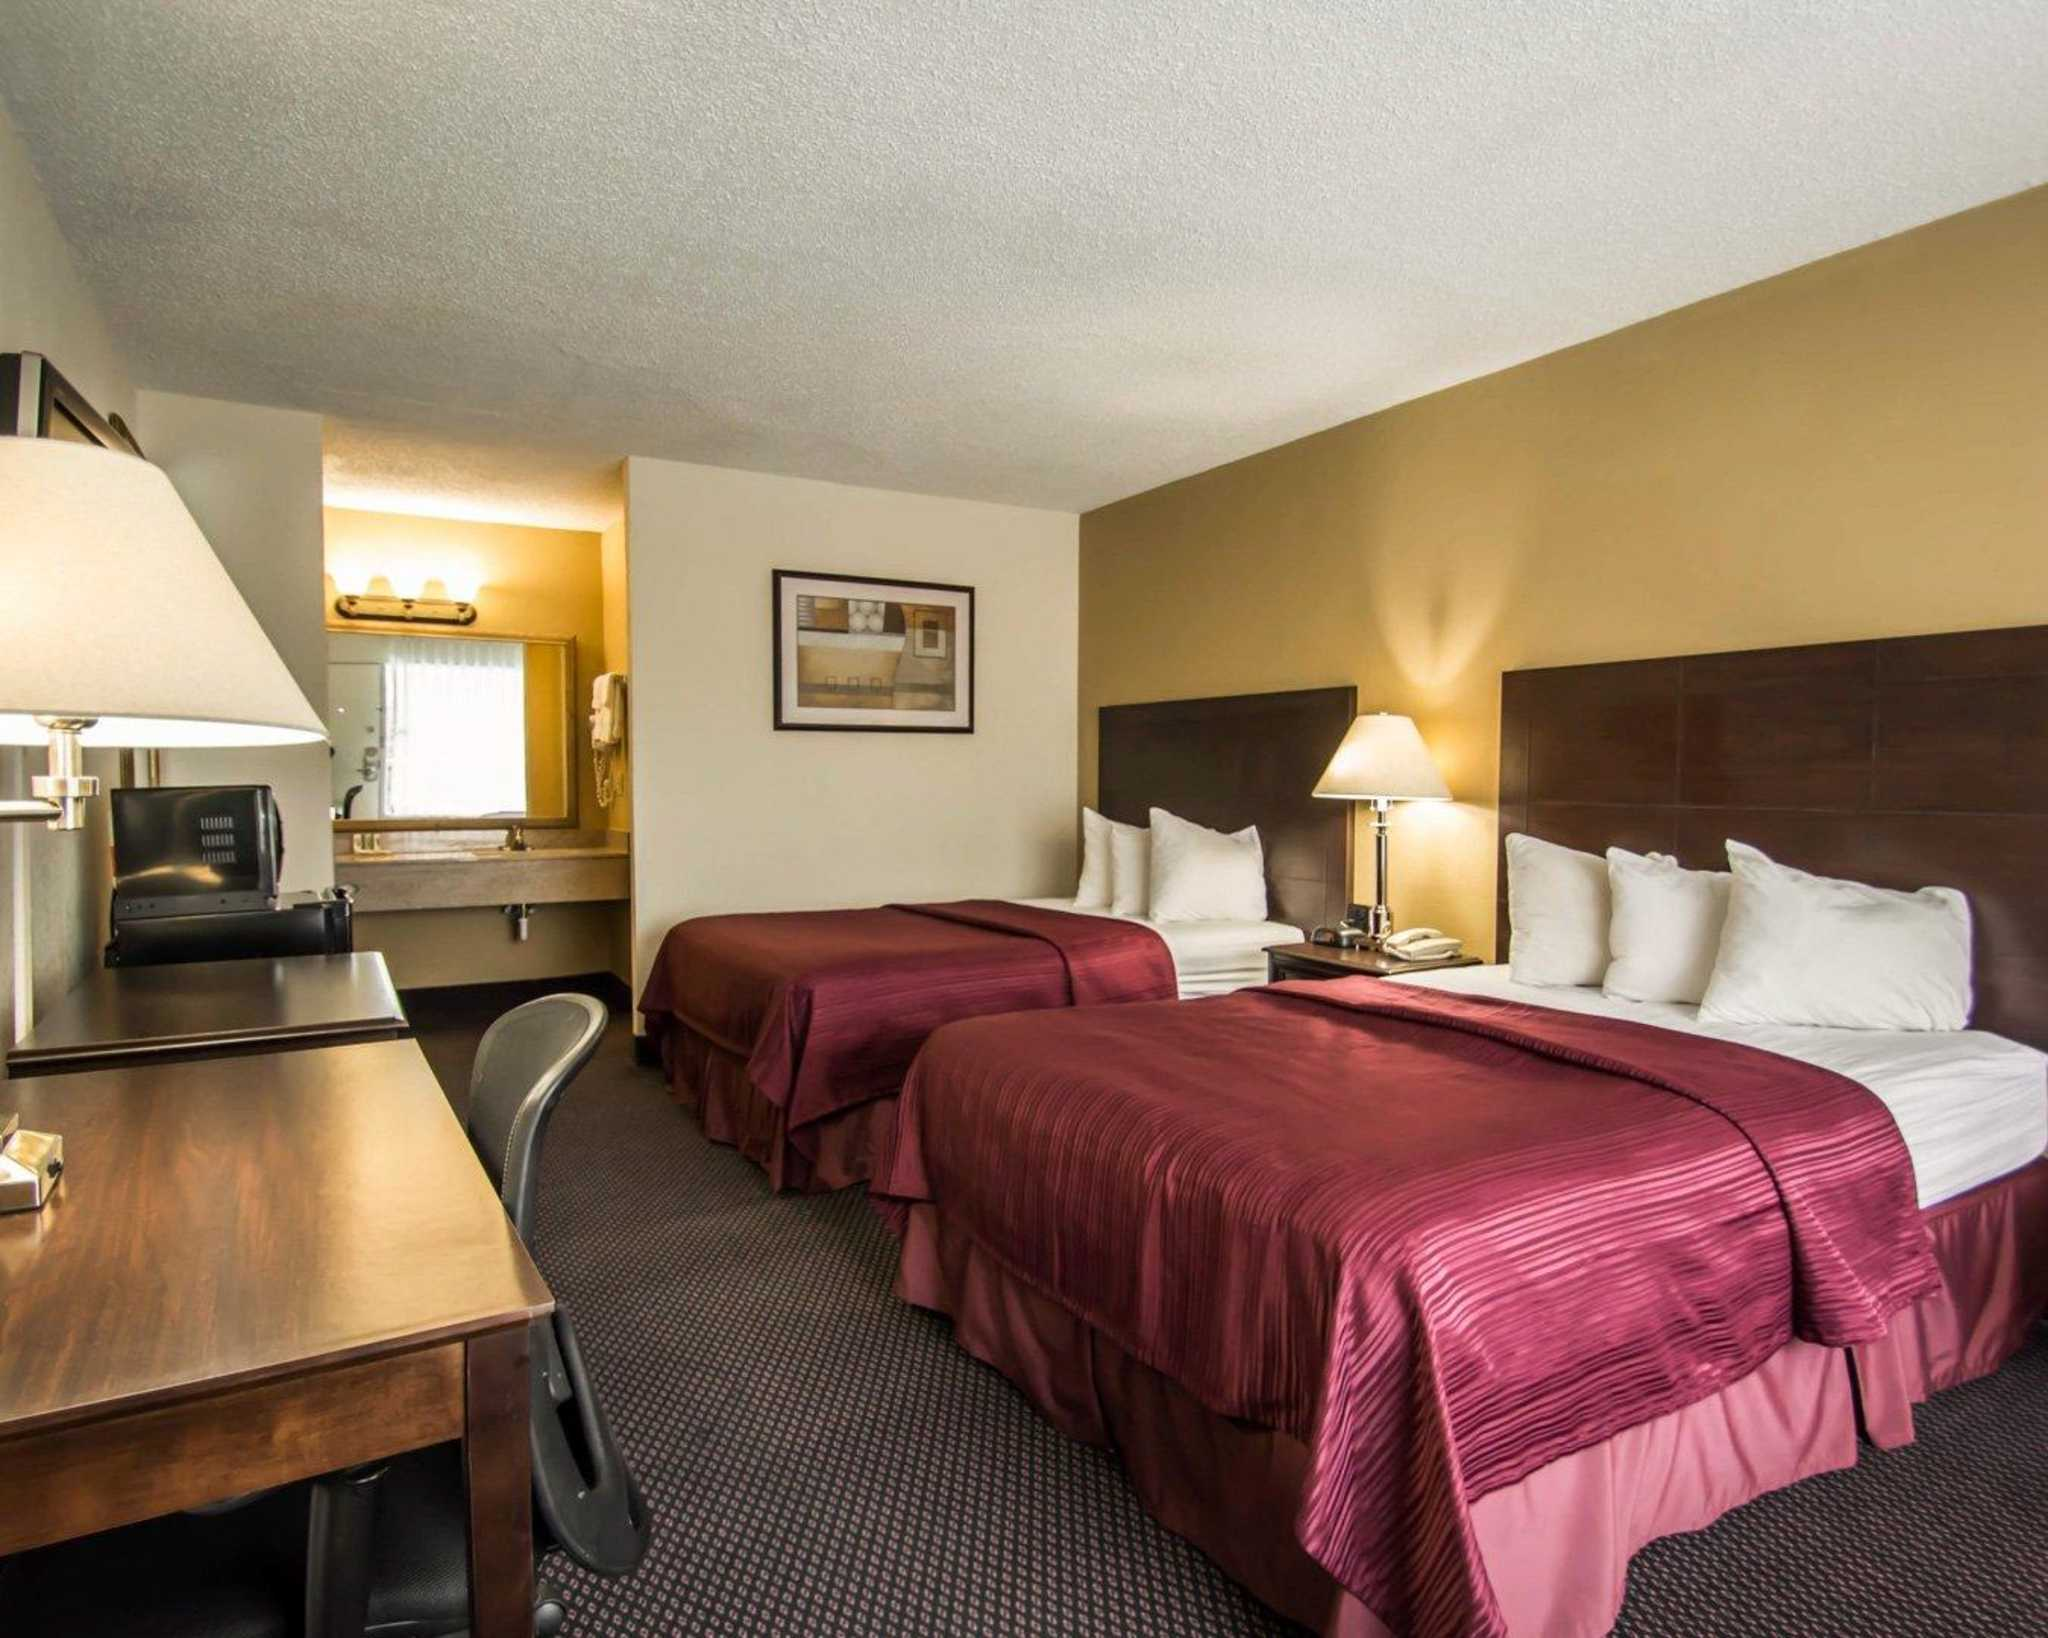 Quality Inn I-75 at Exit 399 image 7